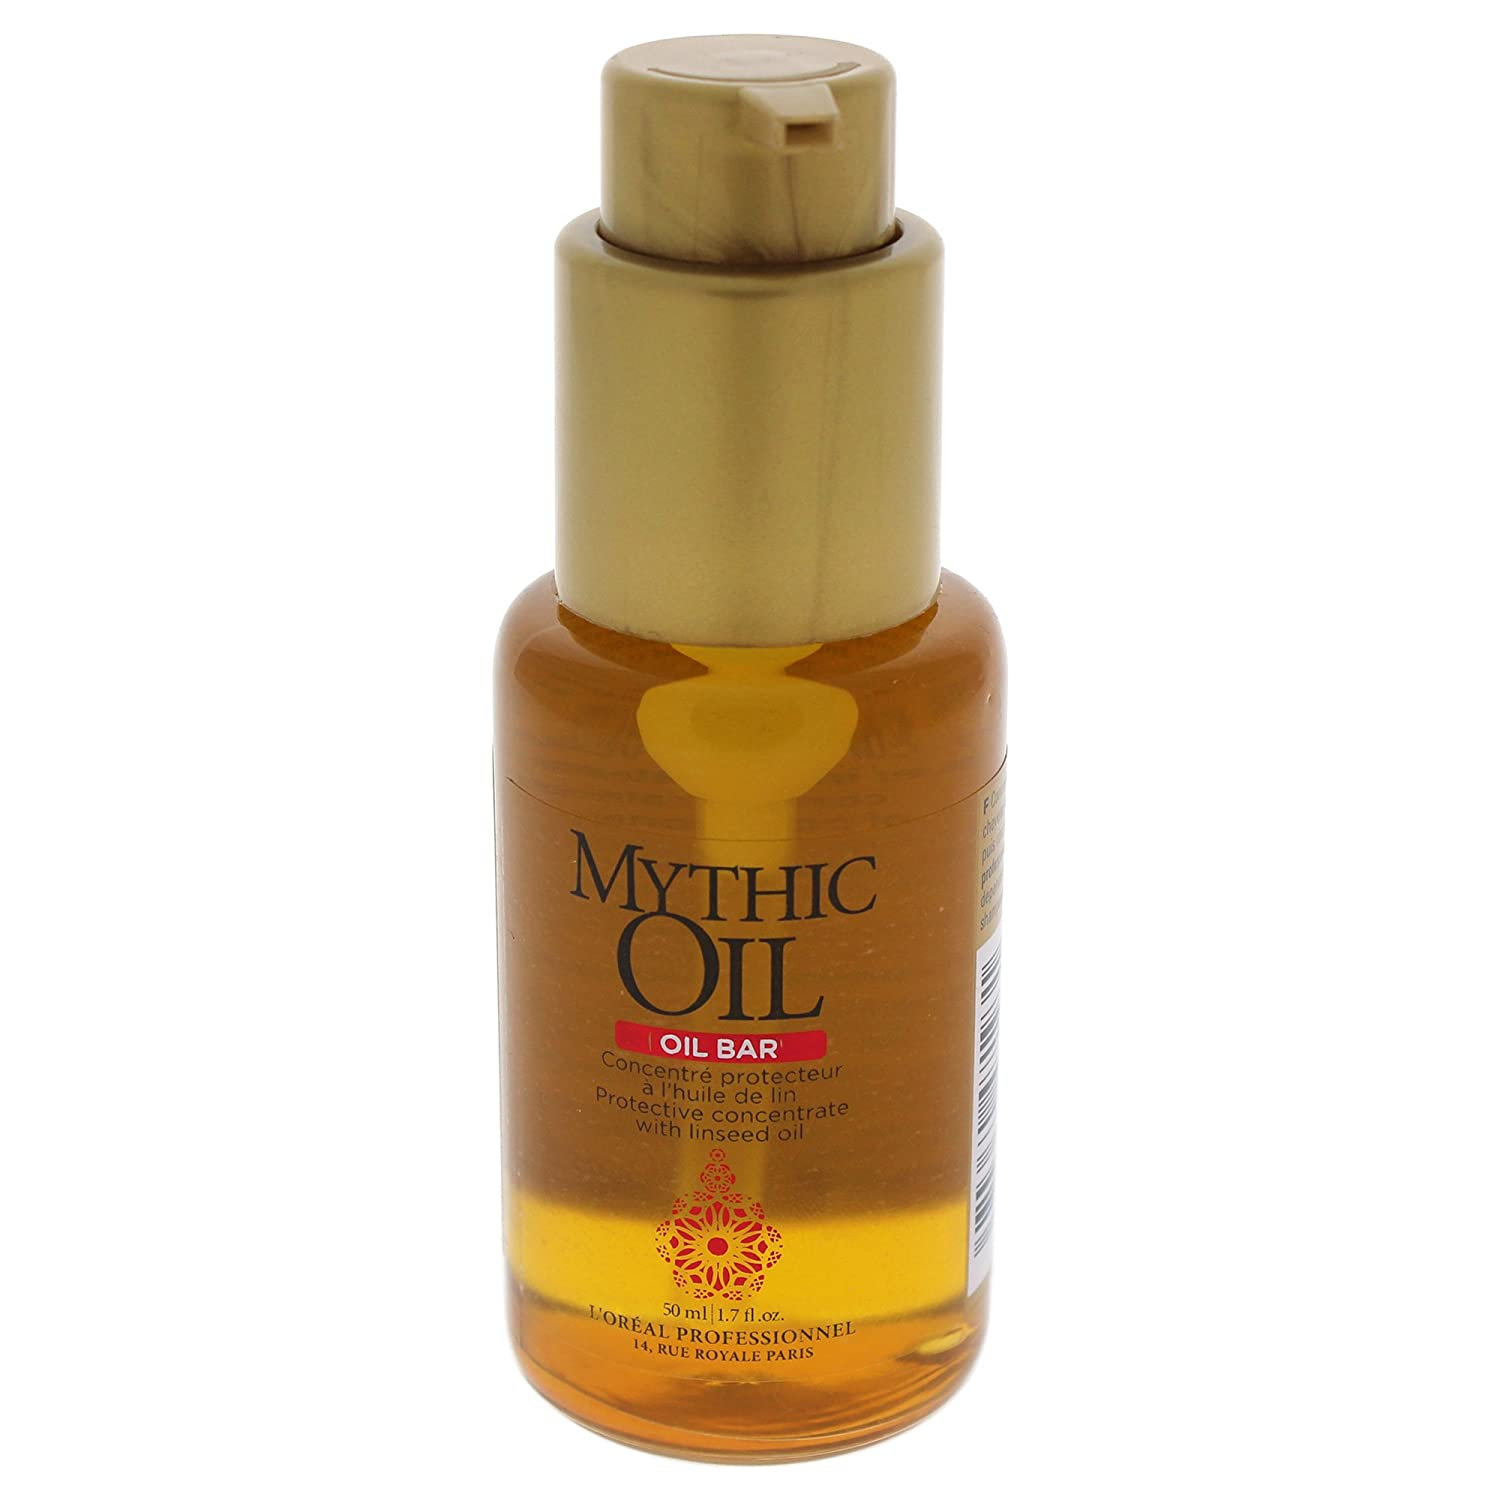 L'Oreal Professional Mythic Oil Bar Protective Concentrate With Linseed Oil, 1.7 Ounce